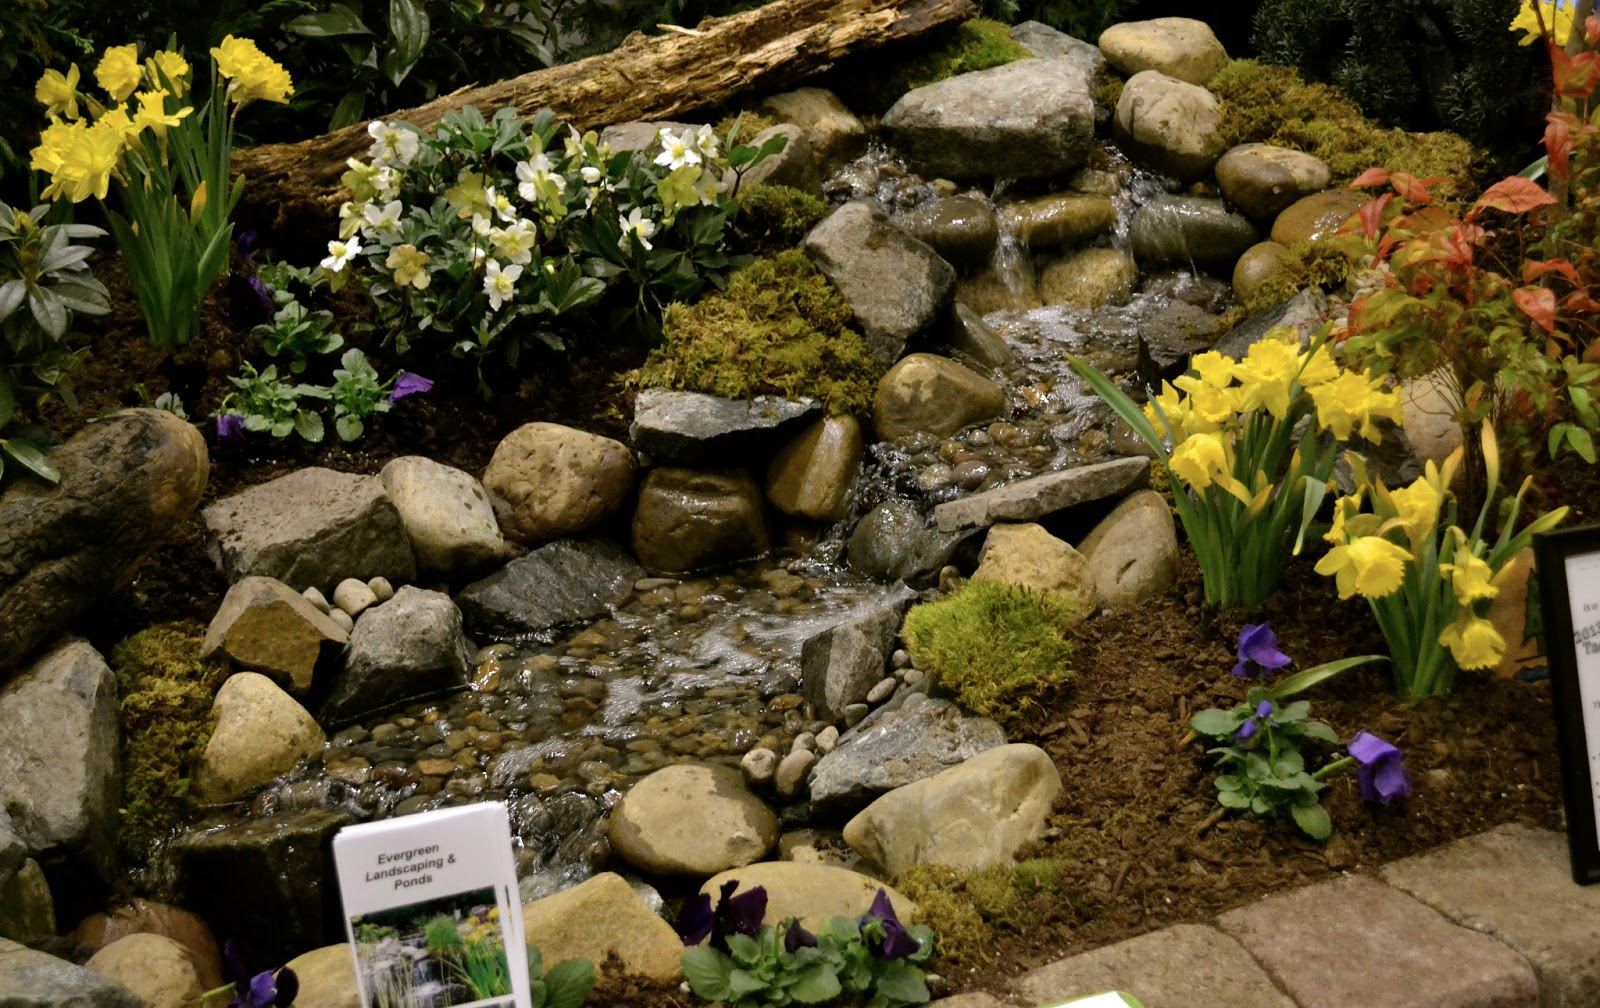 Bonney Lassie: The Tacoma Home and Garden Show 2013